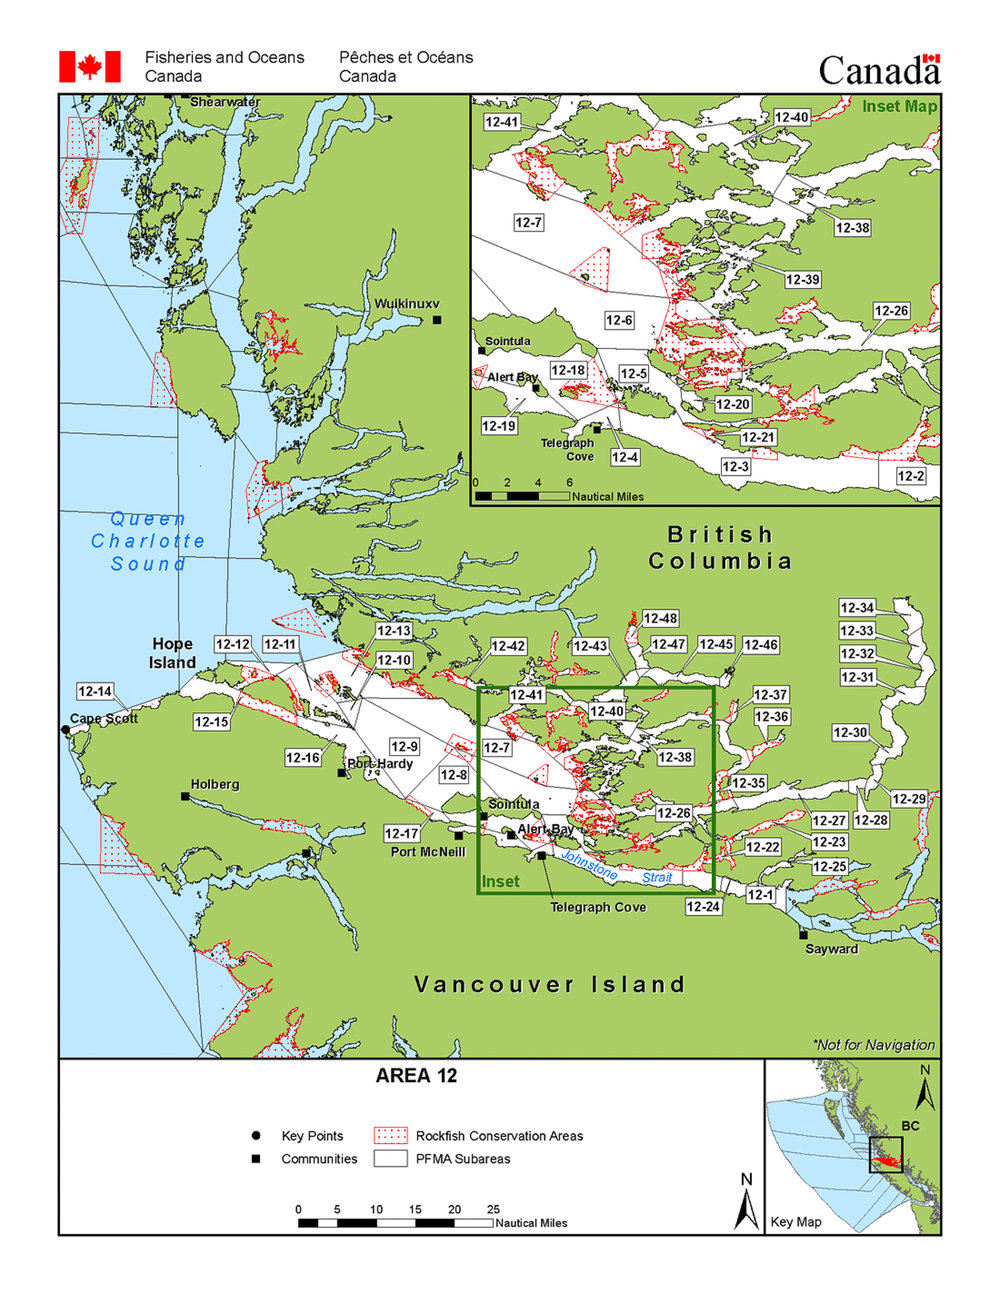 Fisheries Canada Area 12 map.jpg